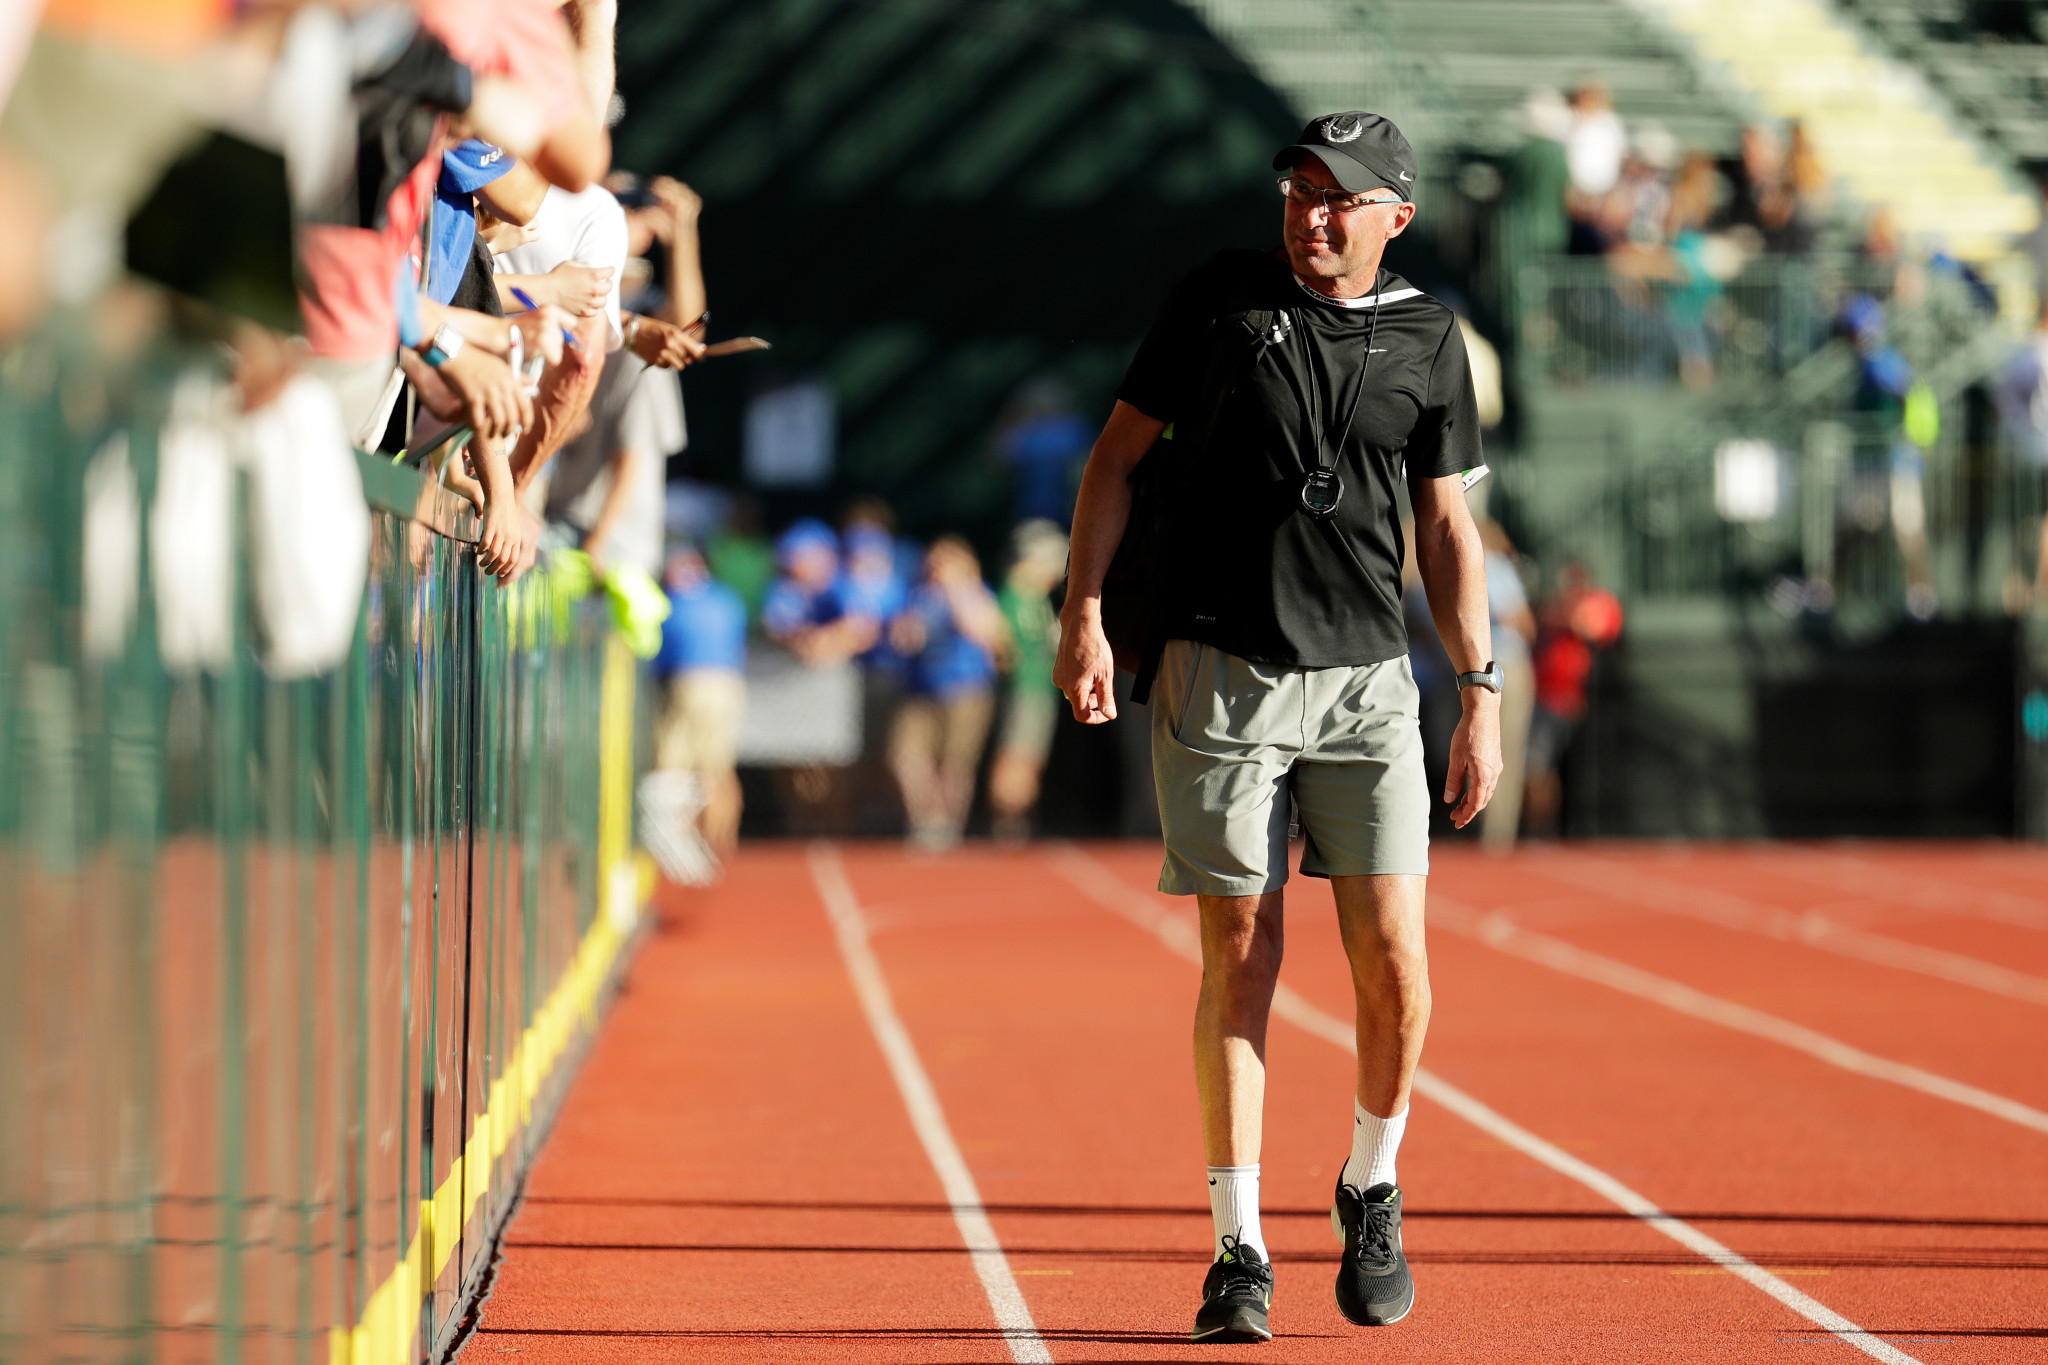 Alberto Salazar, who worked with several leading athletes, including Britain's four-time Olympic gold medallist Sir Mo Farah, was banned by USADA for four-years earlier this week ©Getty Images